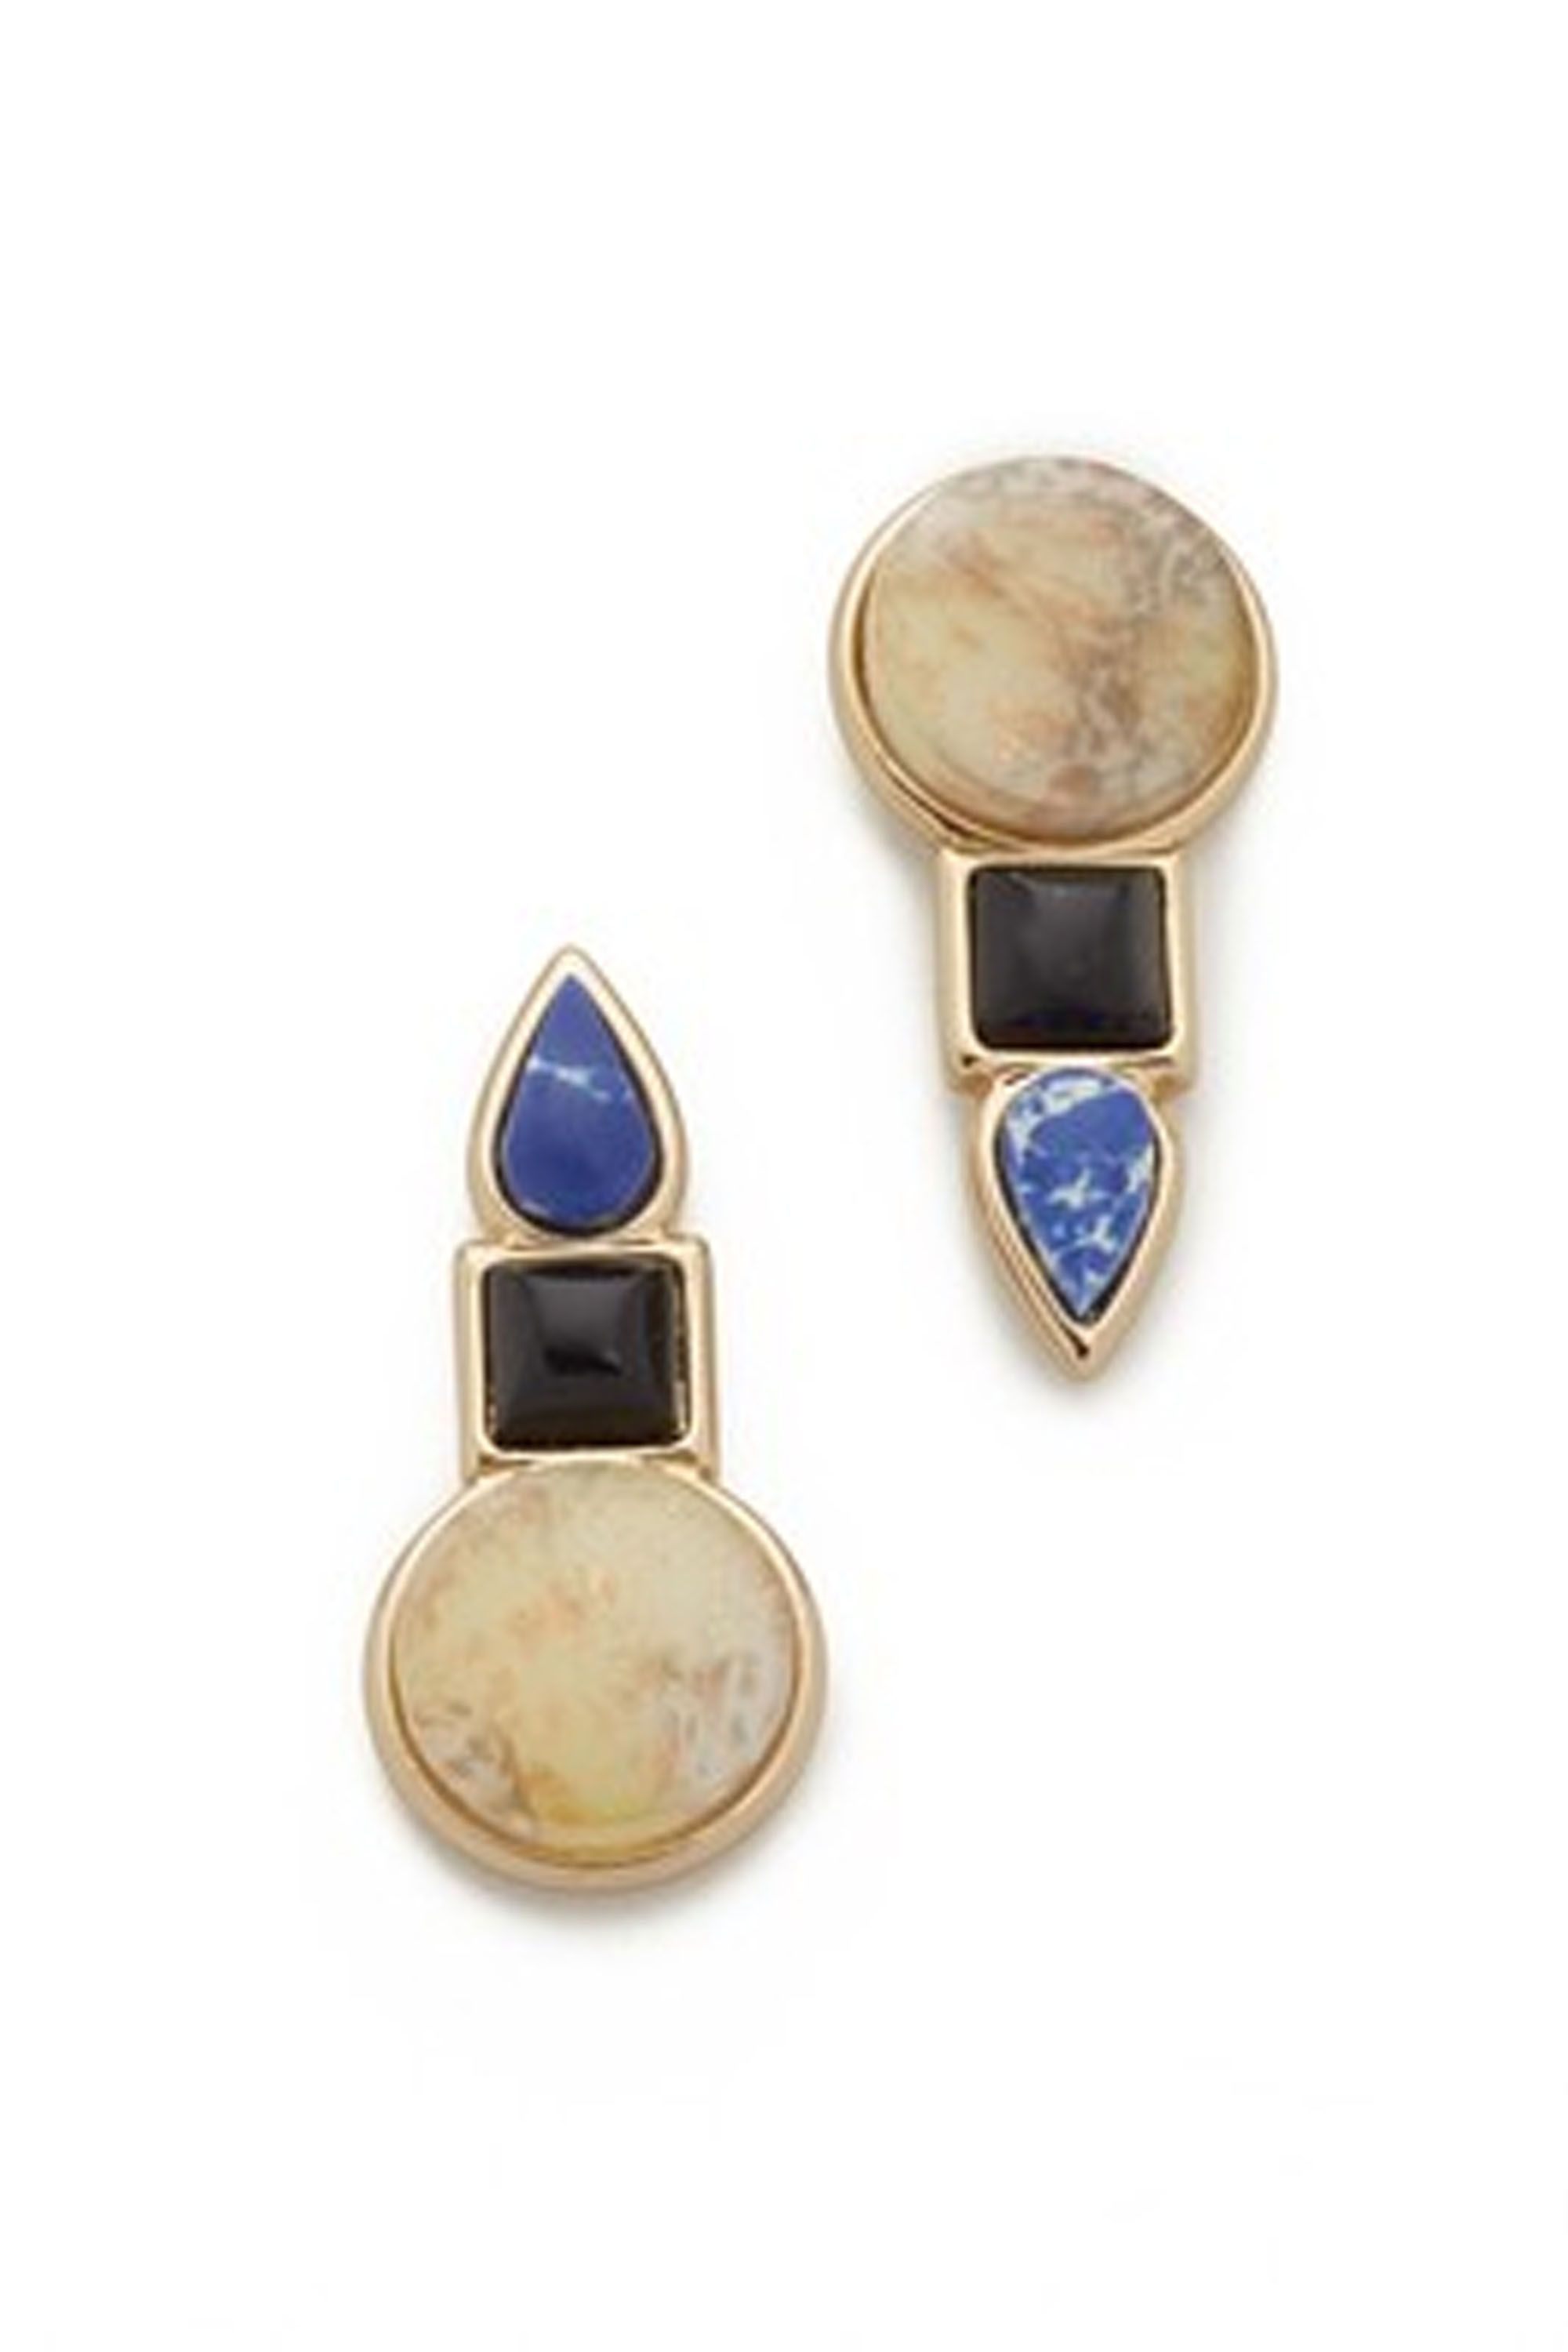 fashion earrings wear anyone can pull style mismatched off mismatch beauty